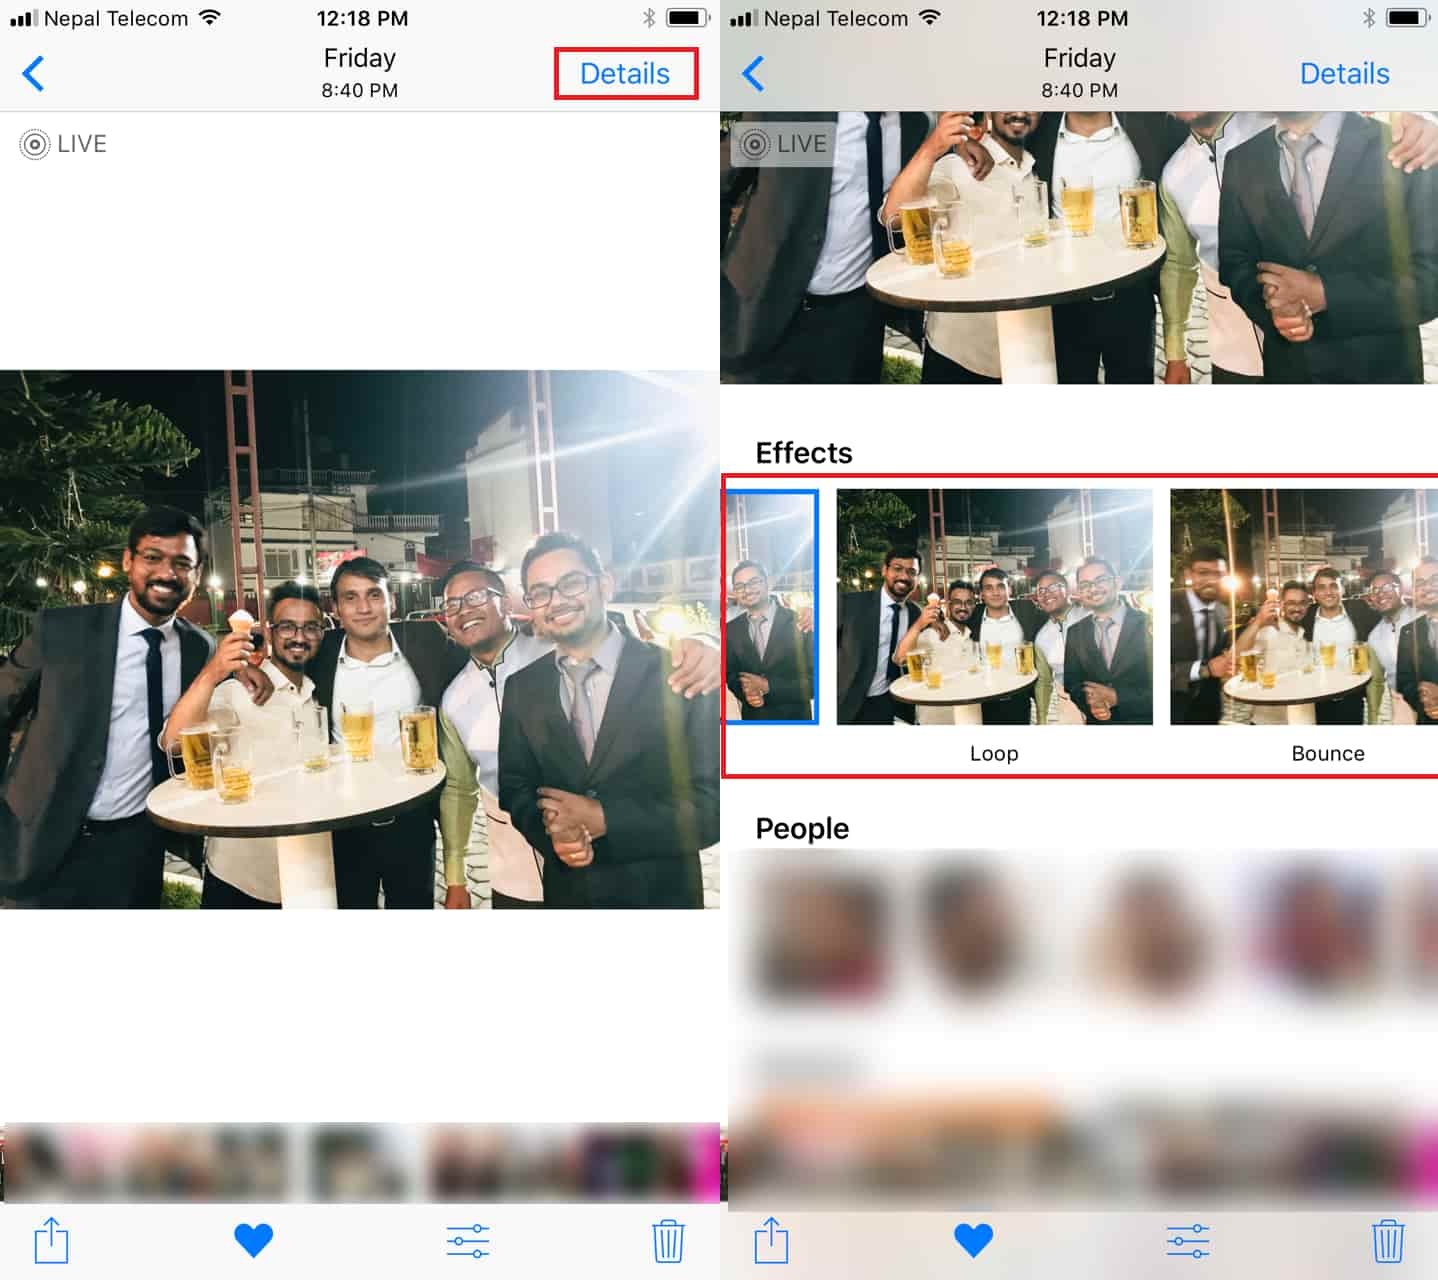 Apple now lets you add some cool live photos effects that you can apply to your live photos in iOS 11.So here is How to Add Effects on Live Photos in iOS 11